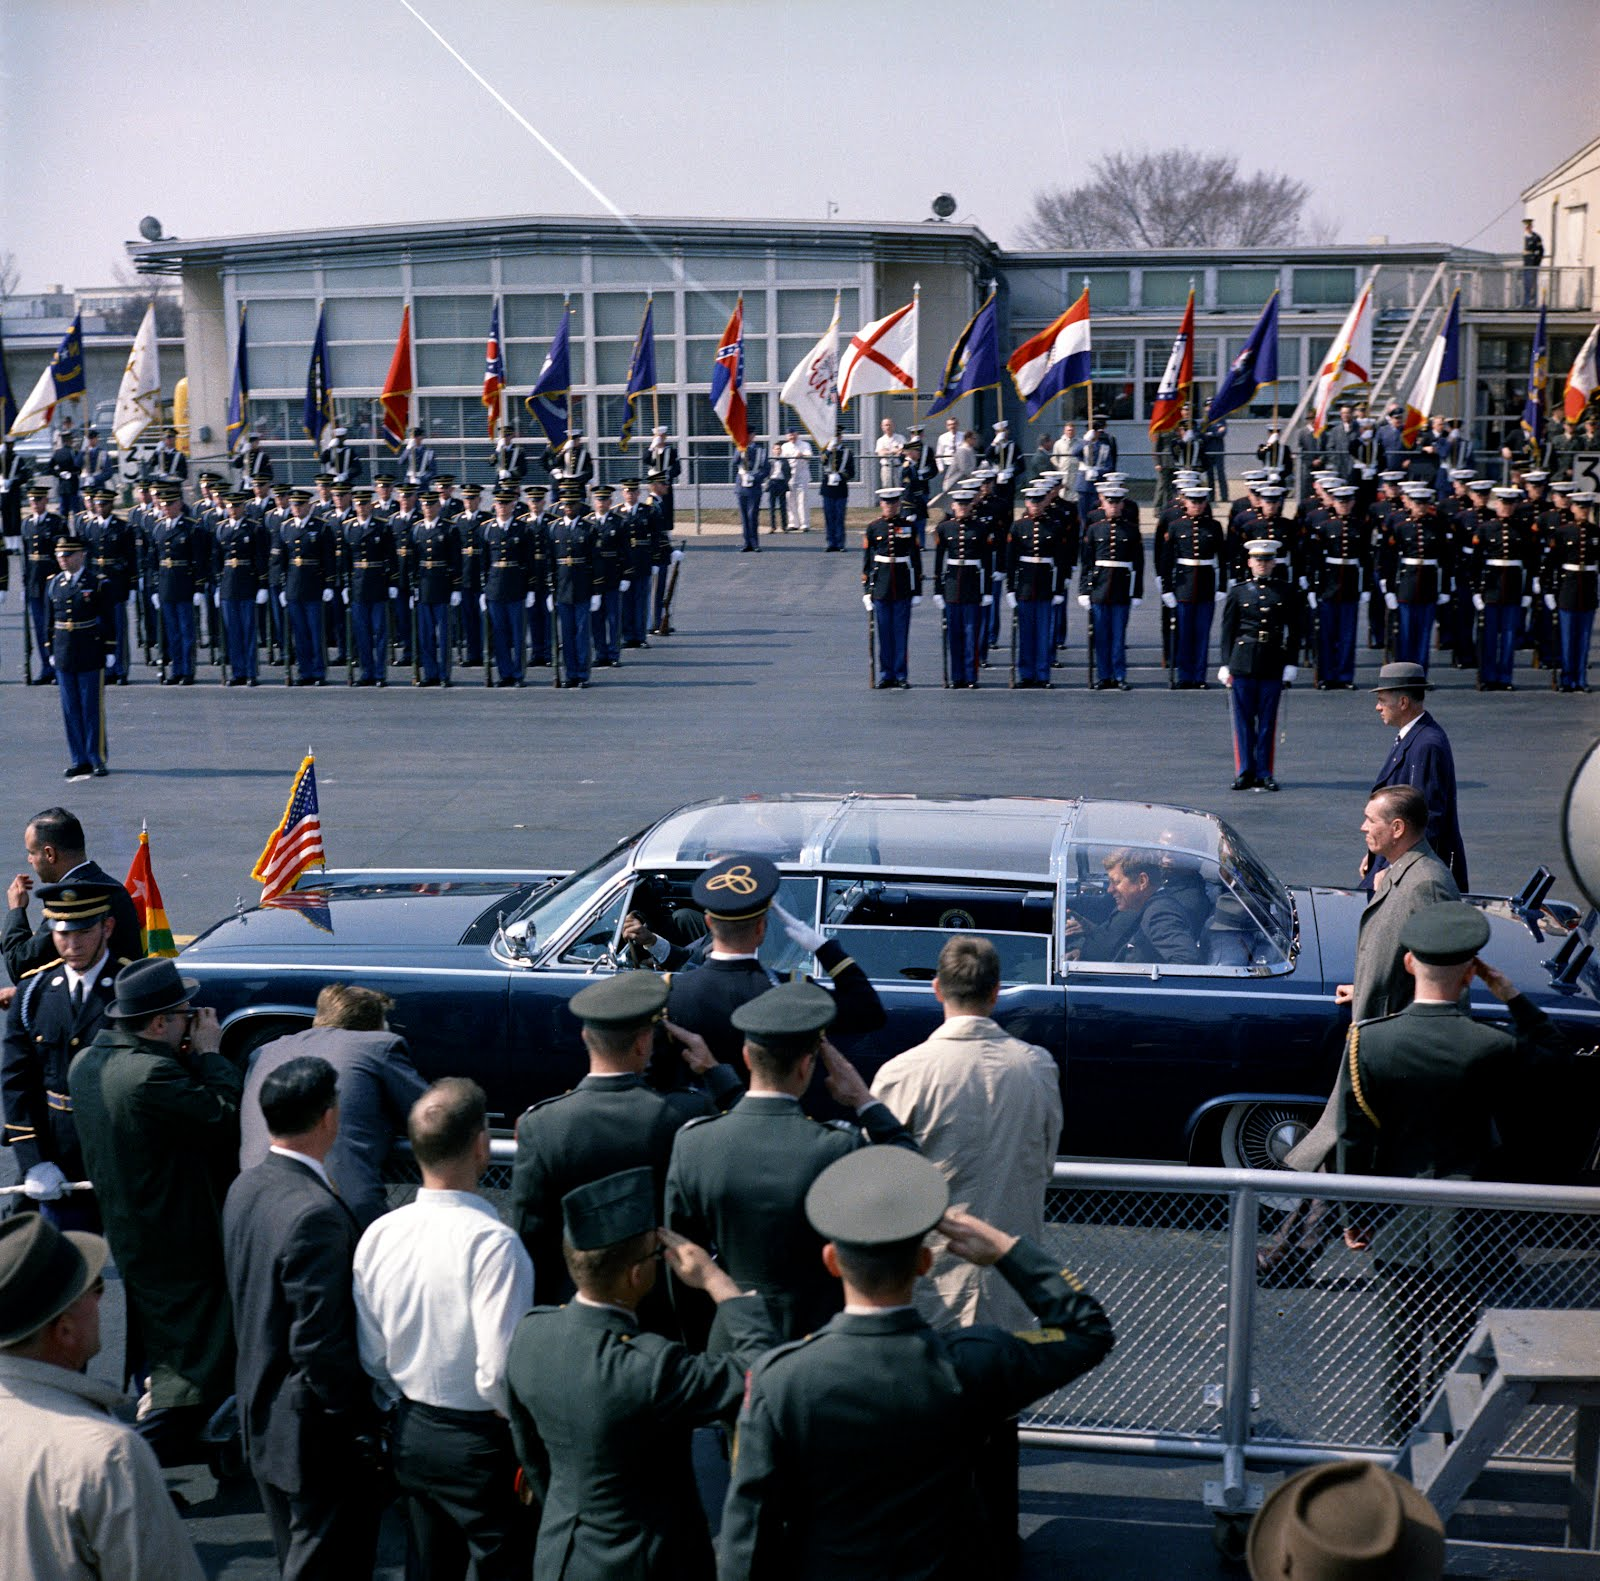 3/20/62: JFK, full bubbletop, agents beside limo